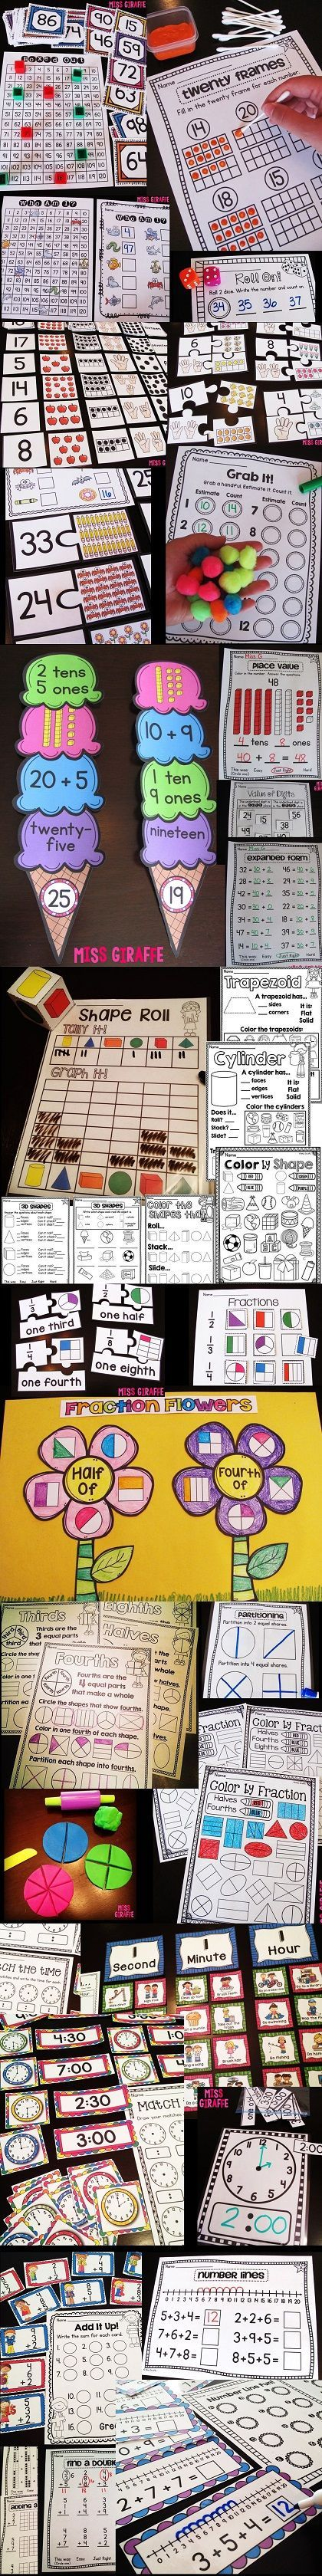 First grade guided math centers and worksheets and ideas FOR THE ENTIRE YEAR - must read this entire blog!!!! You can get all of these in a bundle to have math planned the whole year for 1st grade!